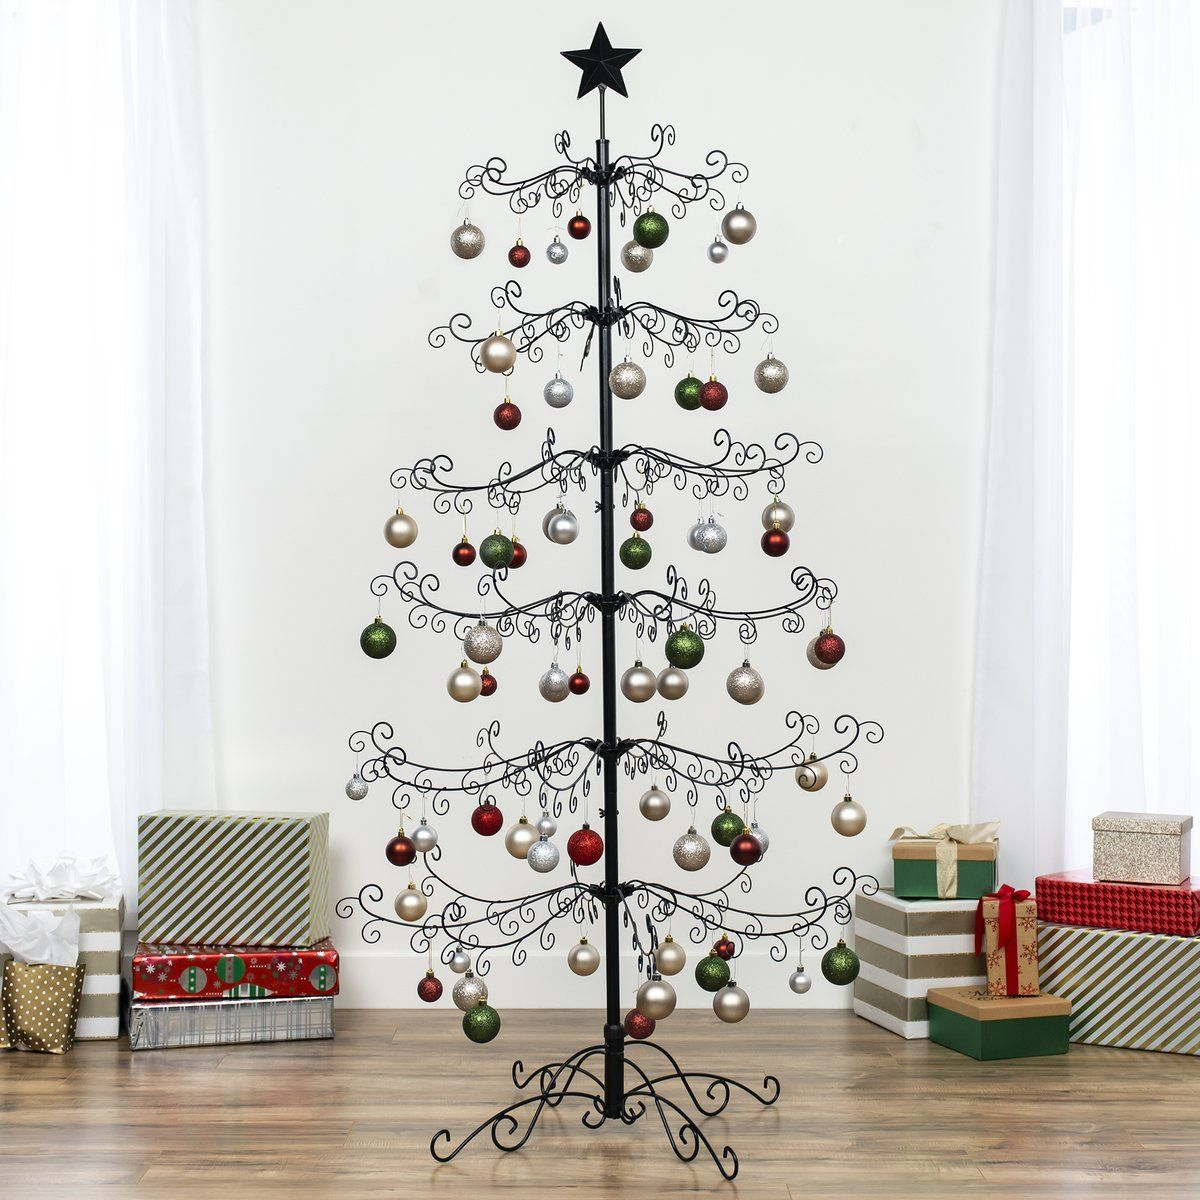 6ft Wrought Iron Ornament Display Christmas Tree W Easy Assembly Stand Ornament Display Wrought Iron Christmas Tree Ornament Tree Display